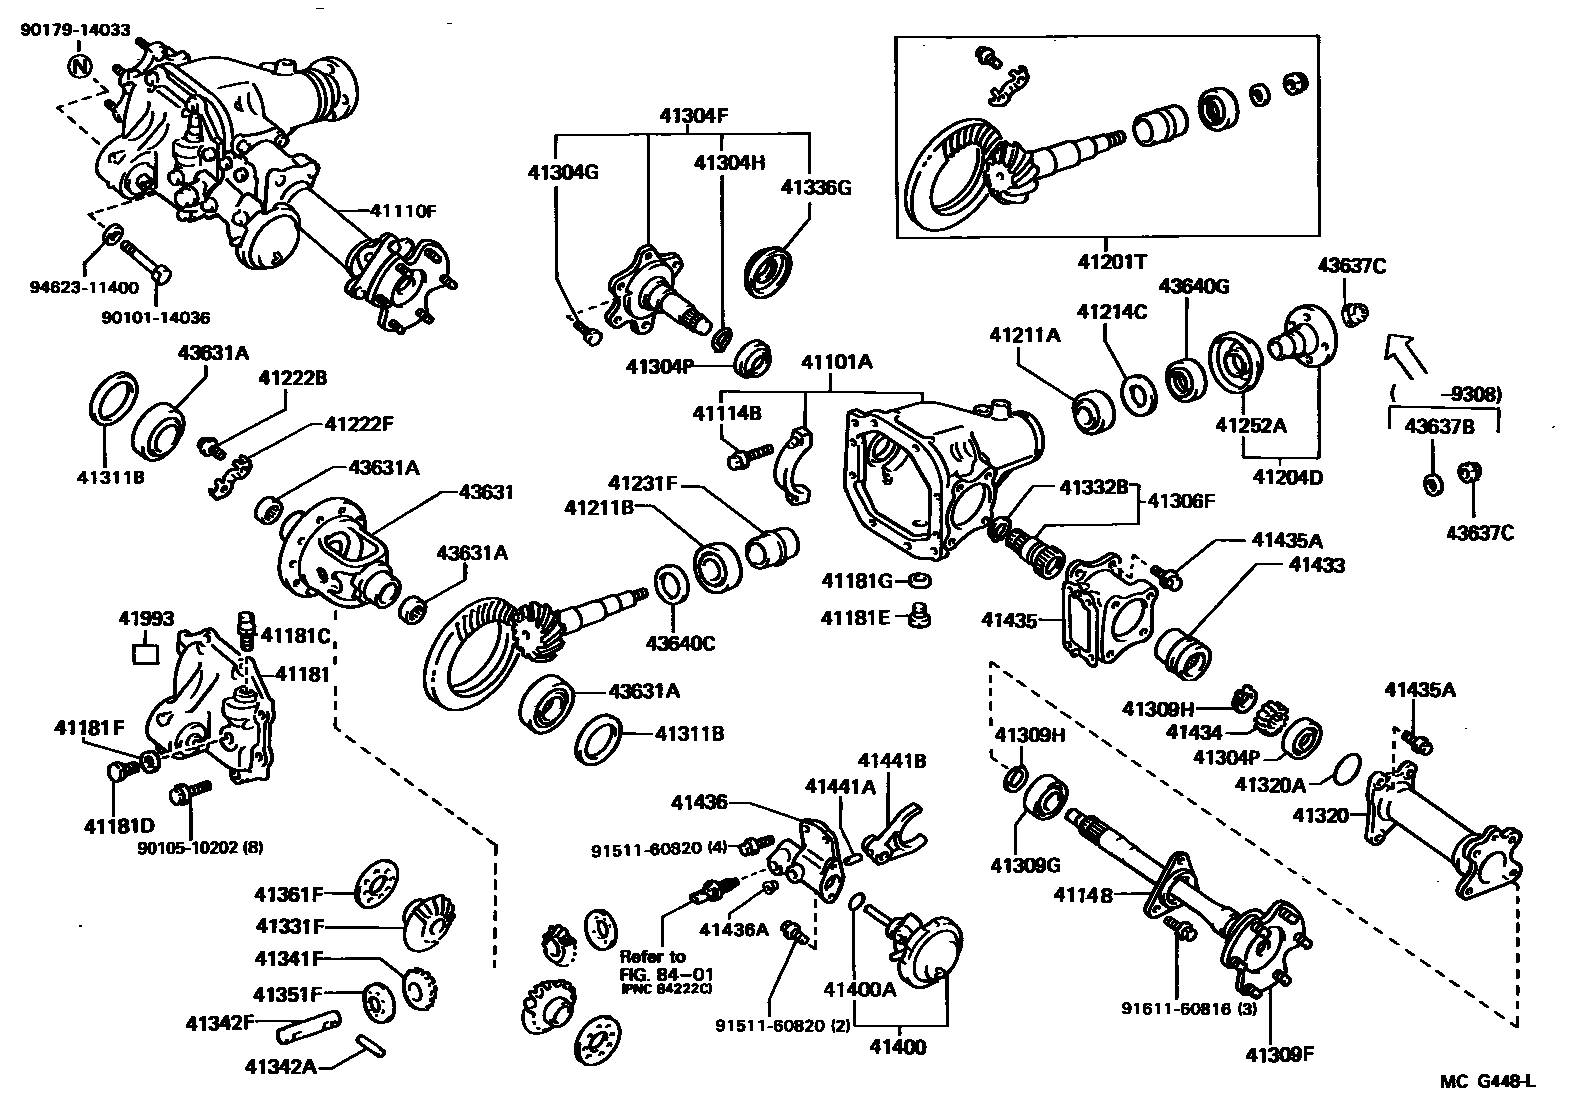 4runner Parts Diagram Great Design Of Wiring 2007 Tundra Engine 2006 Toyota Front Auto 2001 2004